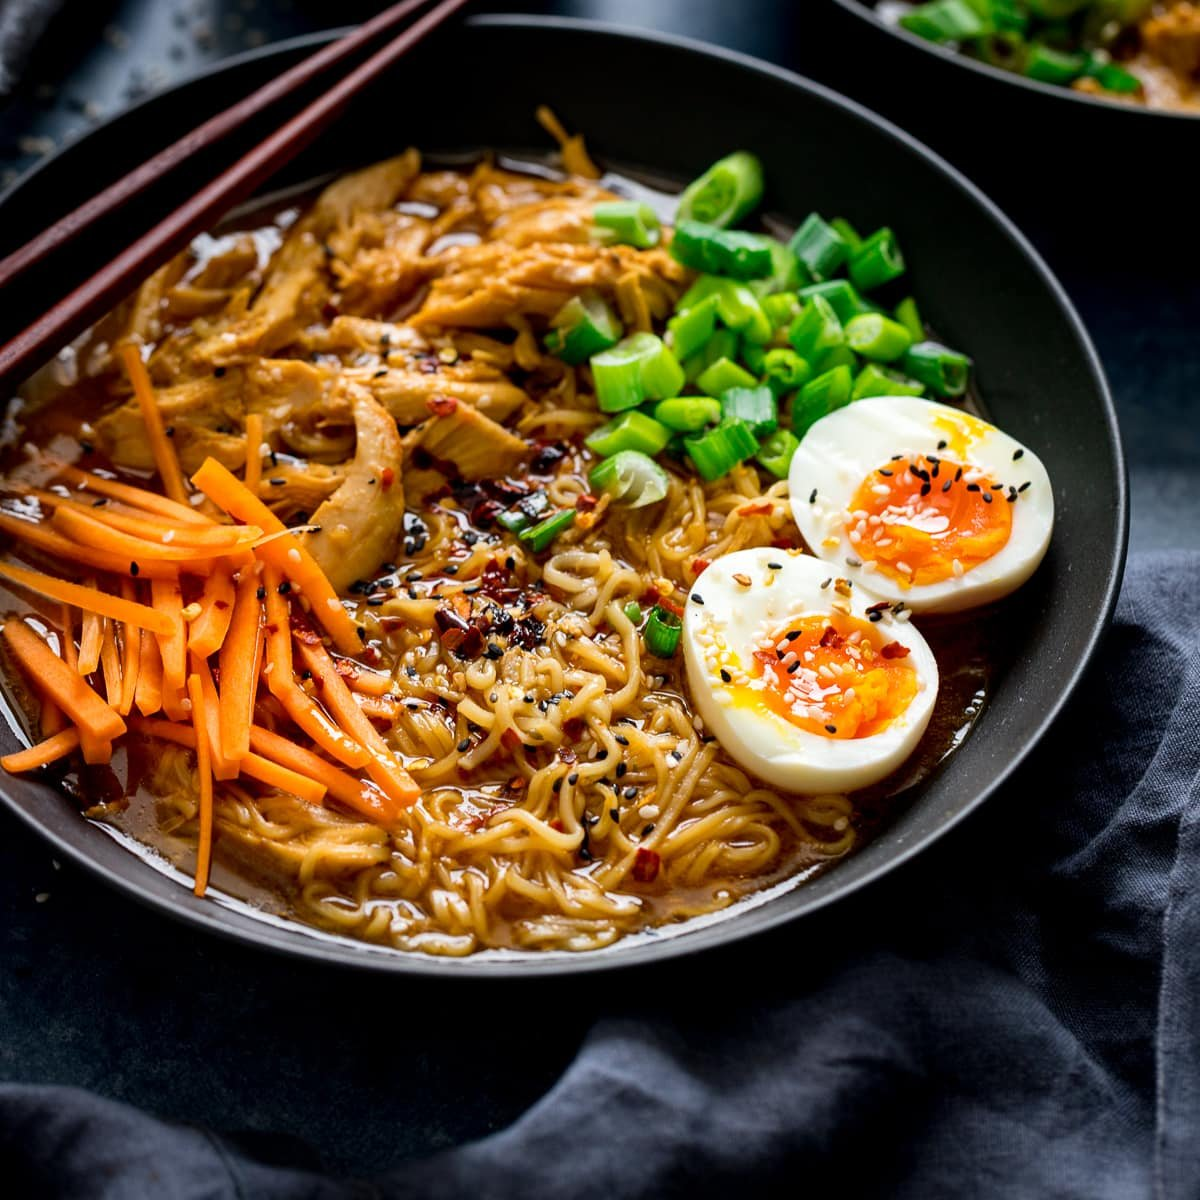 Chicken Ramen in a black bowl topped with egg, carrots and spring onions